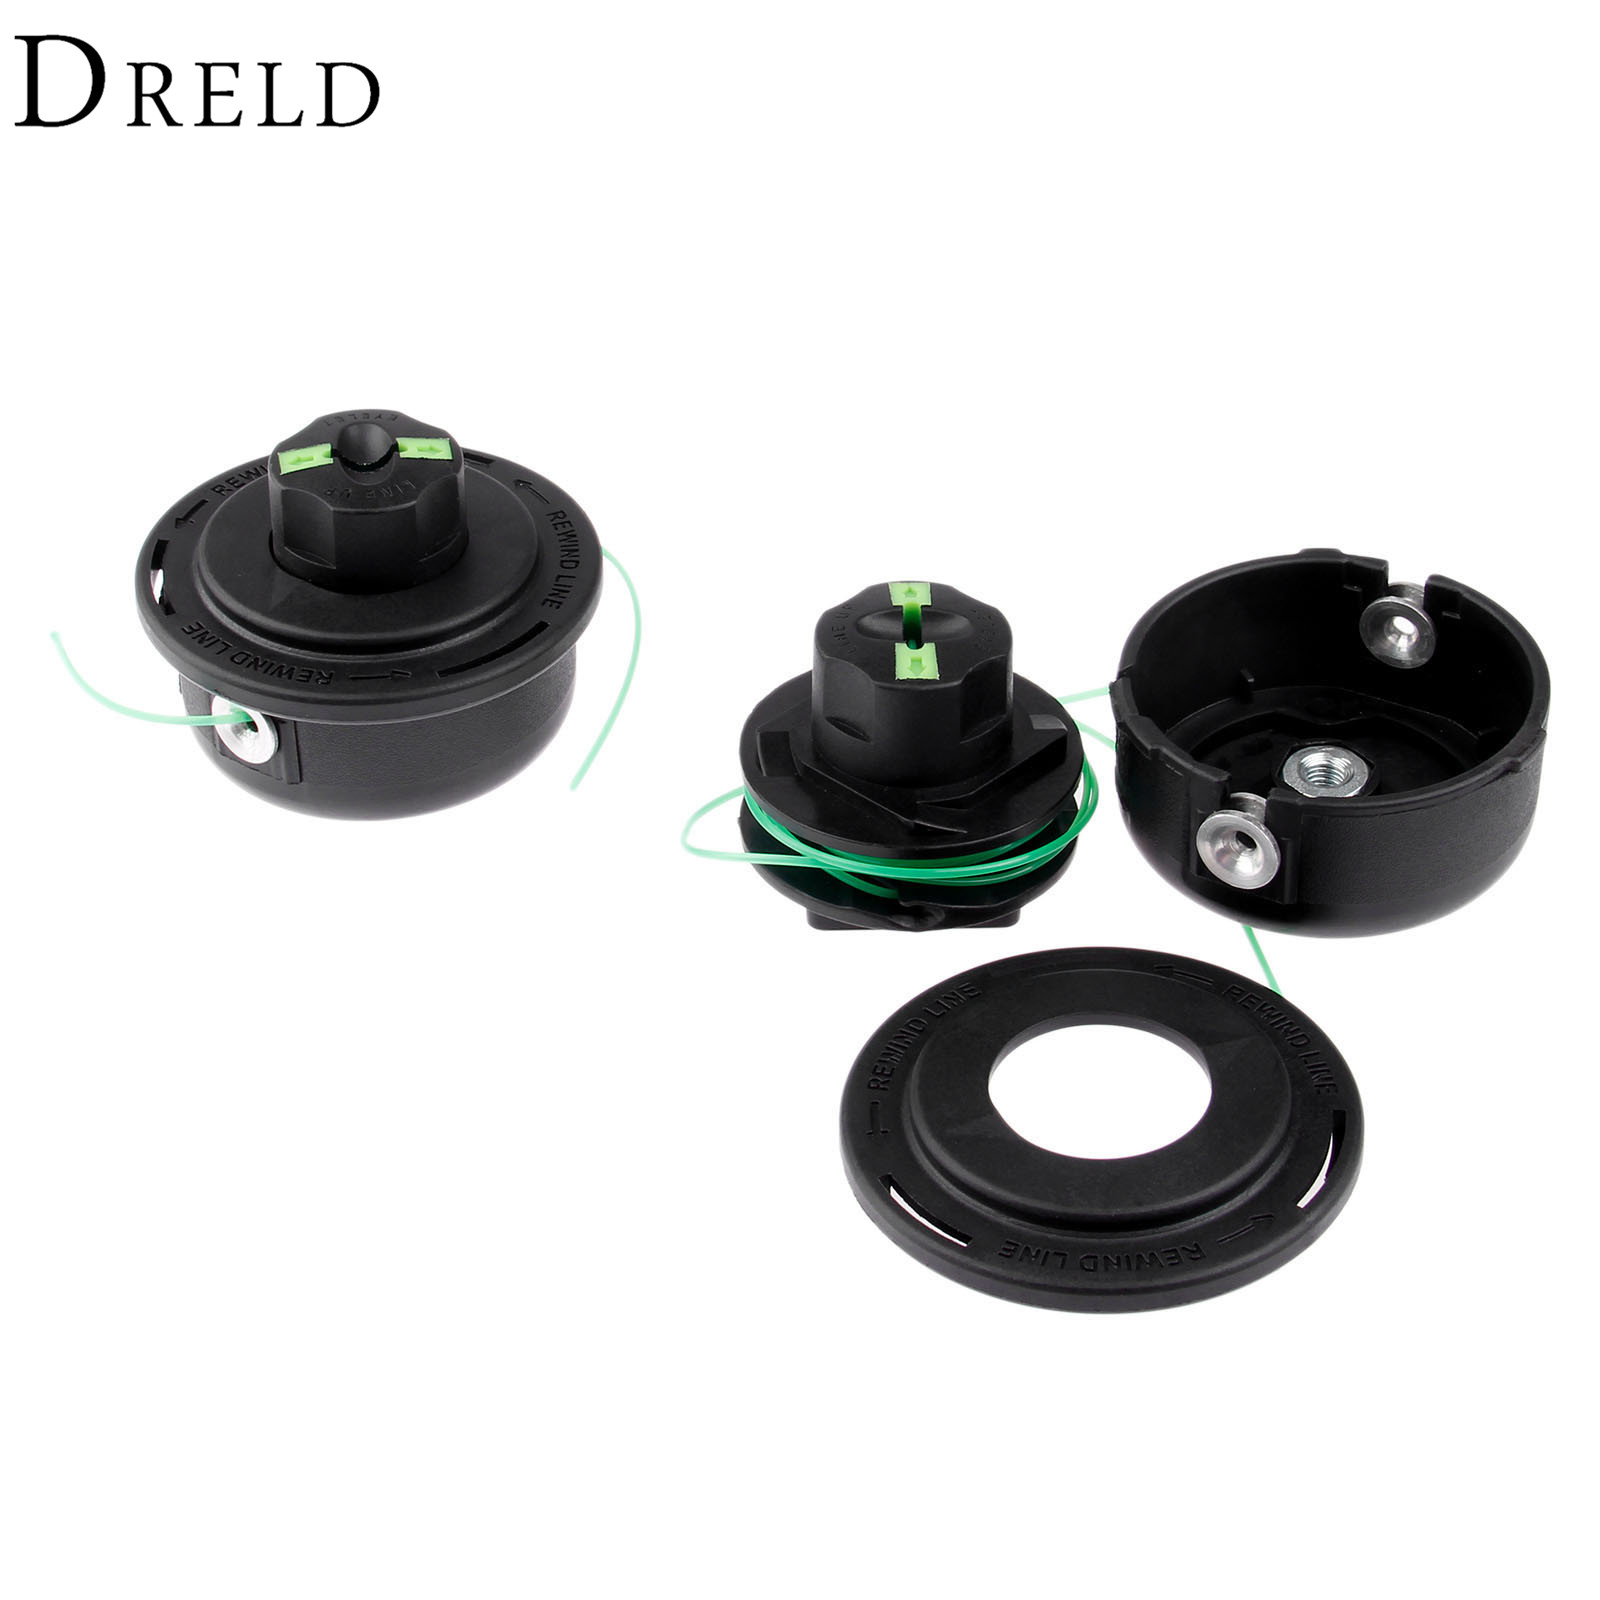 DRELD Electrical Nylon Trimmer Head Adaptor M8*1.25 Double Trimmer Line Bump and Go For Garden Use Grass Trimmer Head Tool Parts mini garden nylon grass trimmer line light purple 15m